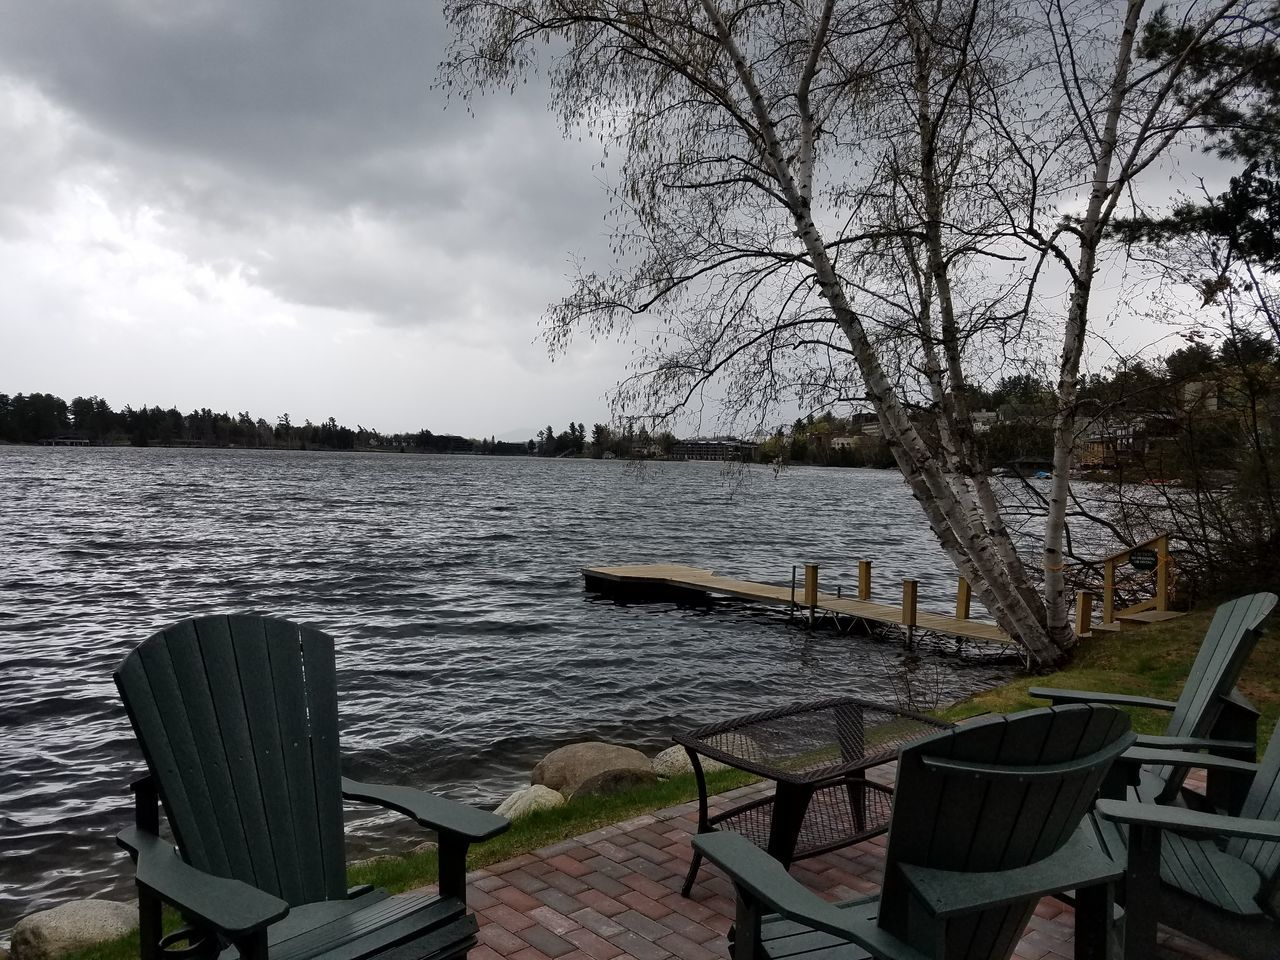 The peaceful serenity of a cloudy day by the lake Nature Outdoors Chair Day No People Tranquility Beauty In Nature Sky Water Tranquil Scene Remote Rock - Object Peace And Quiet Nature Mountain Landscape Scenics Cloudy Skies Clouds And Sky Cloudy Lake View Lake Placid, NY Mirror Lake Trees Dock